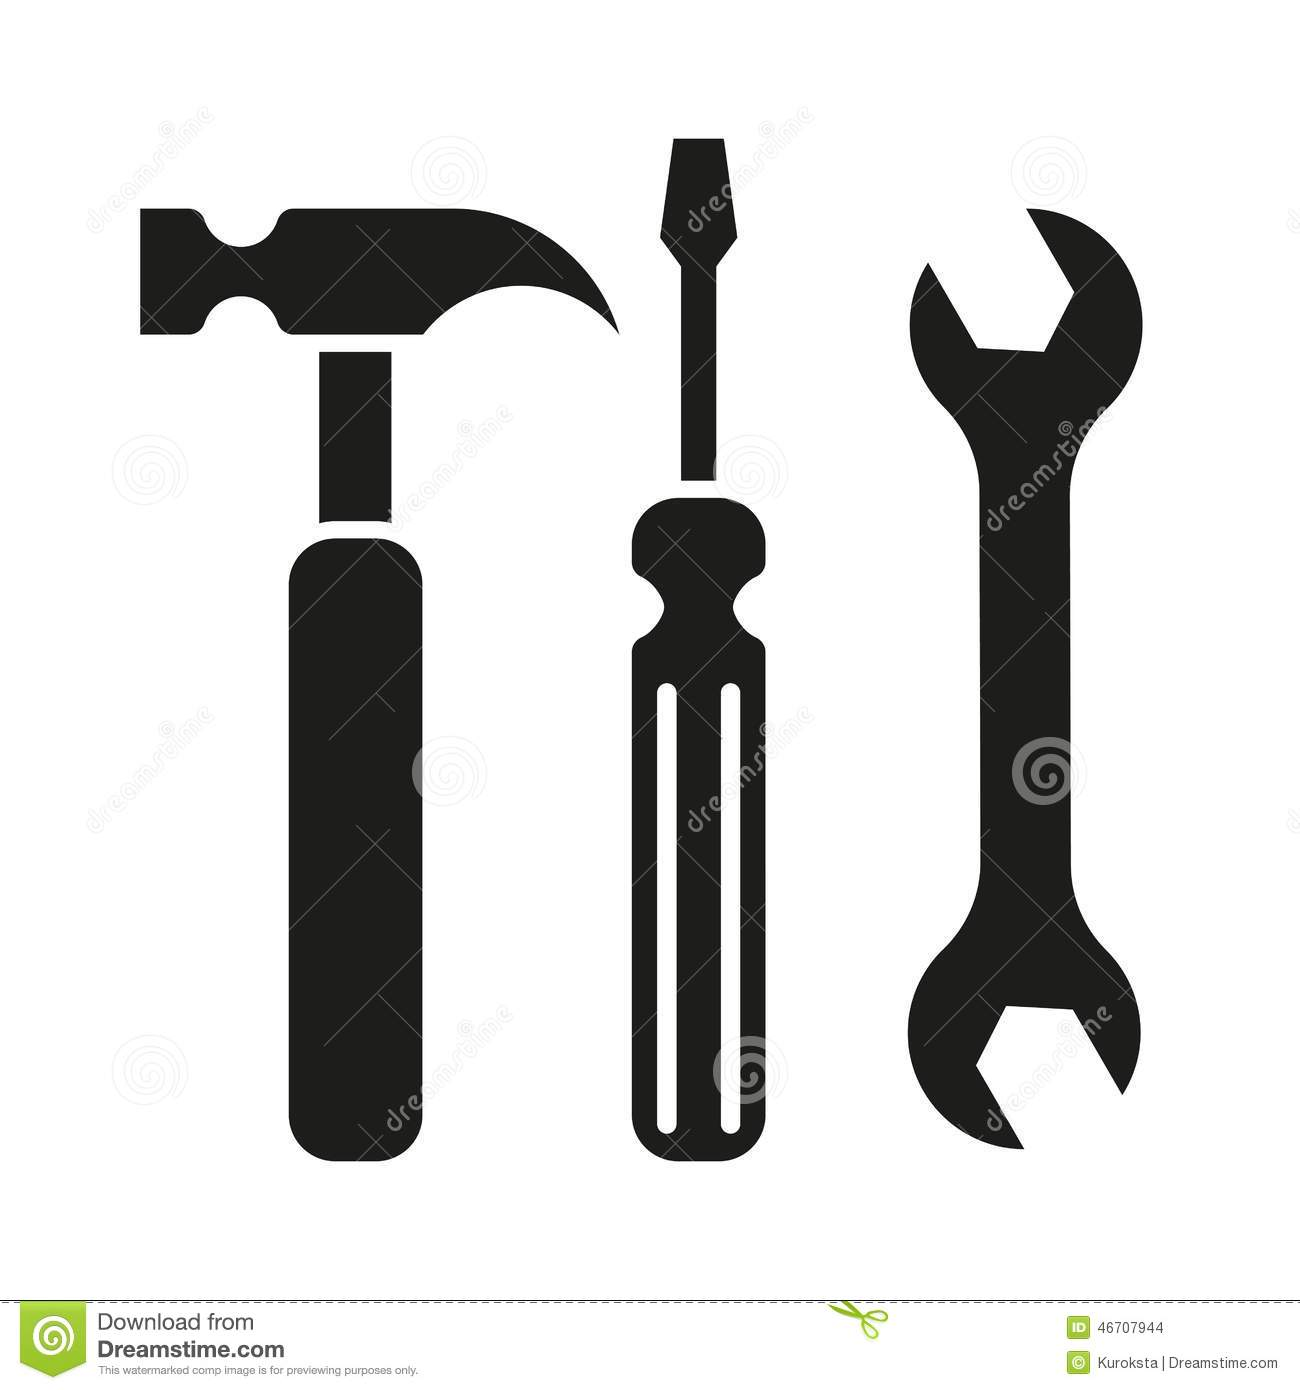 Hammer turnscrew tools icon